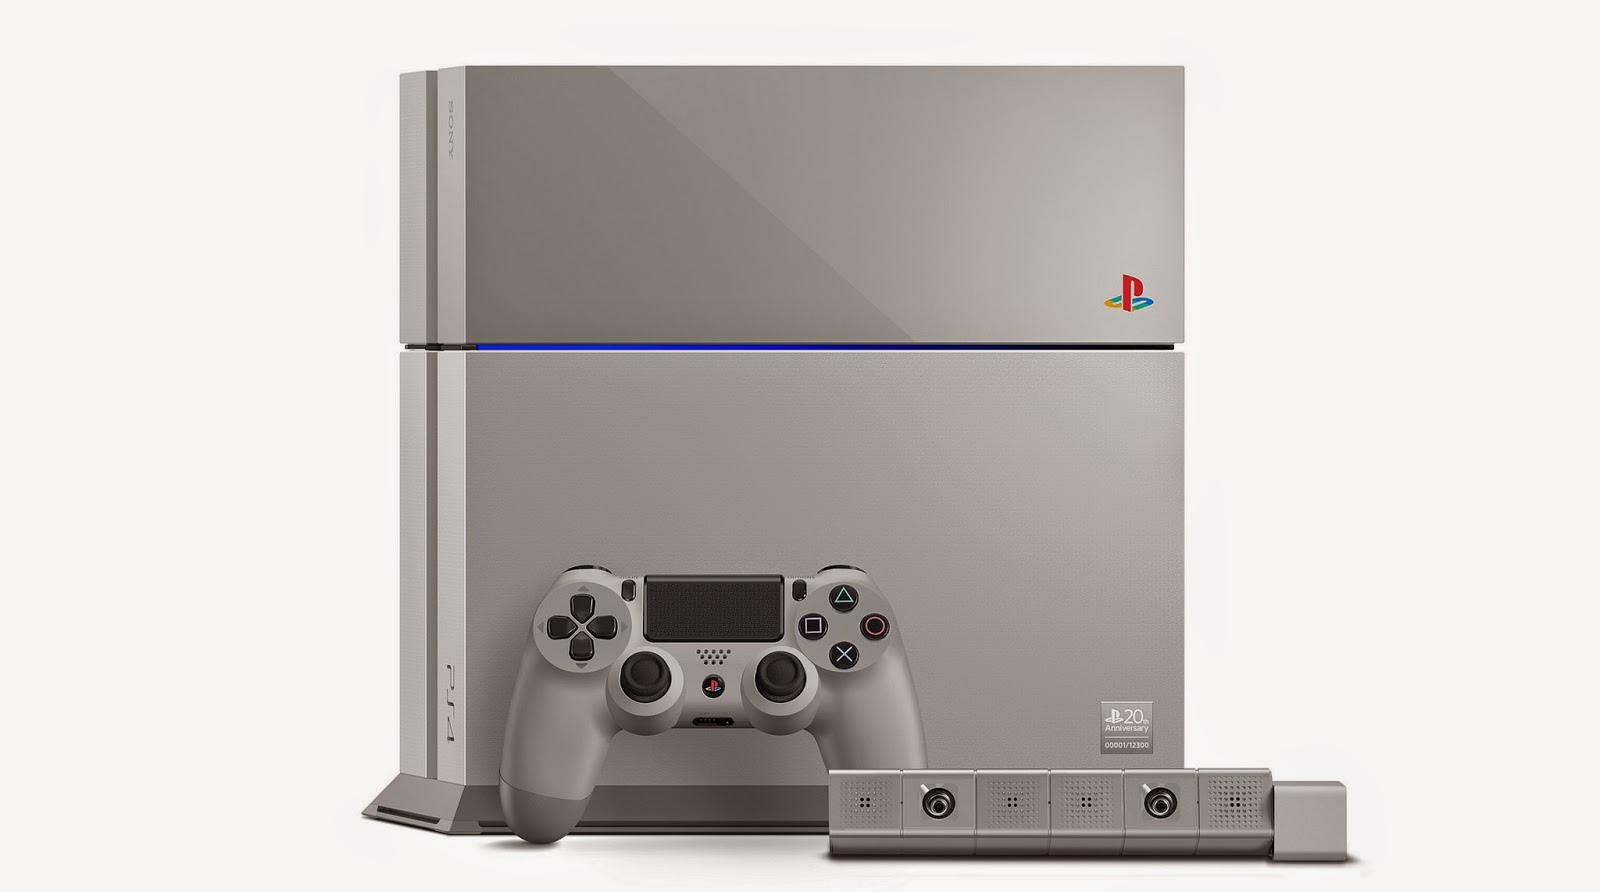 Pocket Hobby - www.pockethobby.com - Hobby News - Sony Limited Edition 20th Anniversary PlayStation 4 Photo